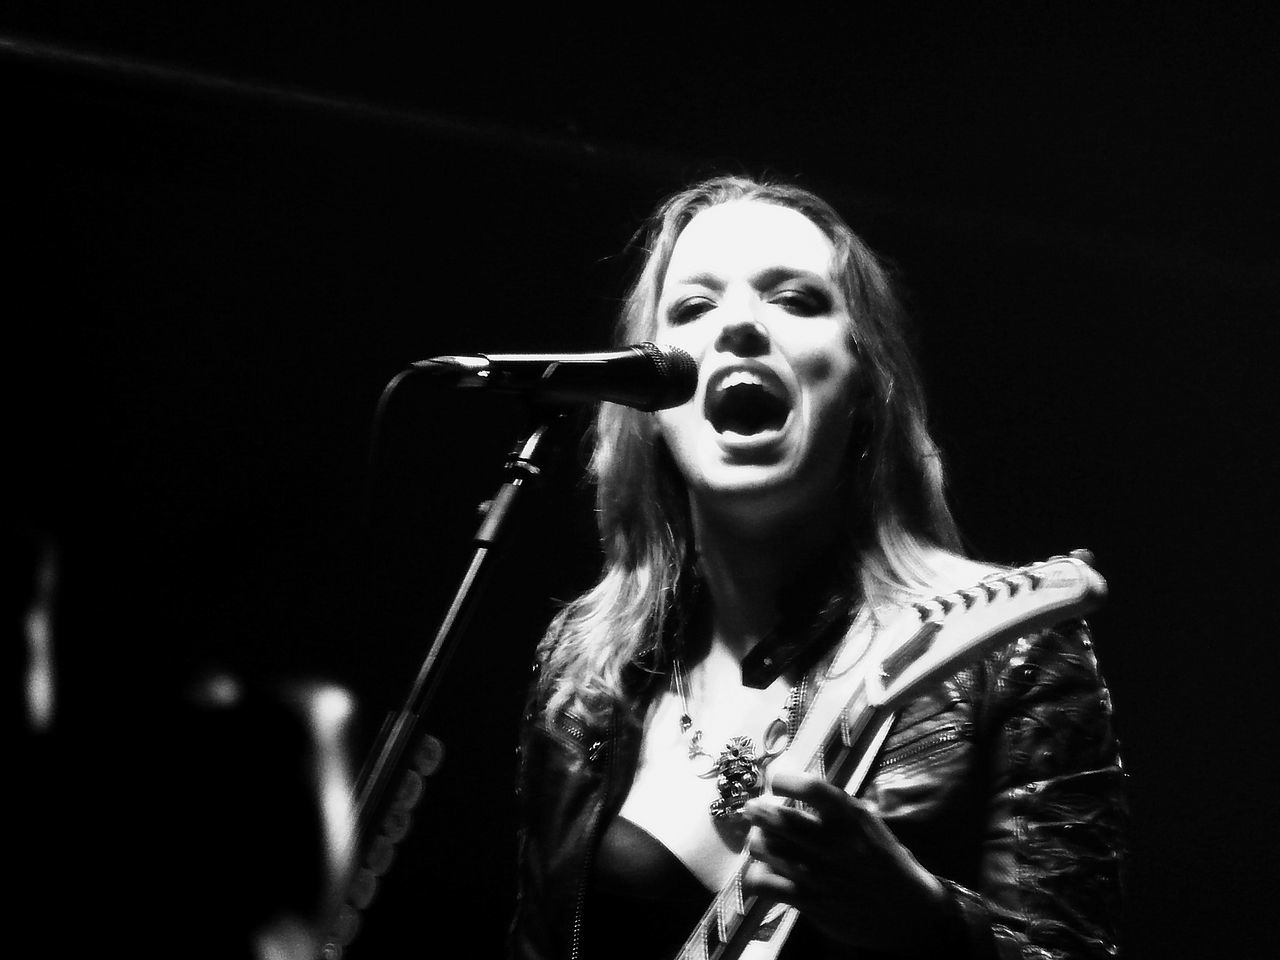 Lzzy Hale of Halestorm in concert in MilanBianco E Nero Black And White Cantante Concert Concert Photography Concerto Donna Event Evento Halestorm Lzzy Hale Rock Band Singer  Women Women Around The World EyeEm Diversity The Photojournalist - 2017 EyeEm Awards The Portraitist - 2017 EyeEm Awards